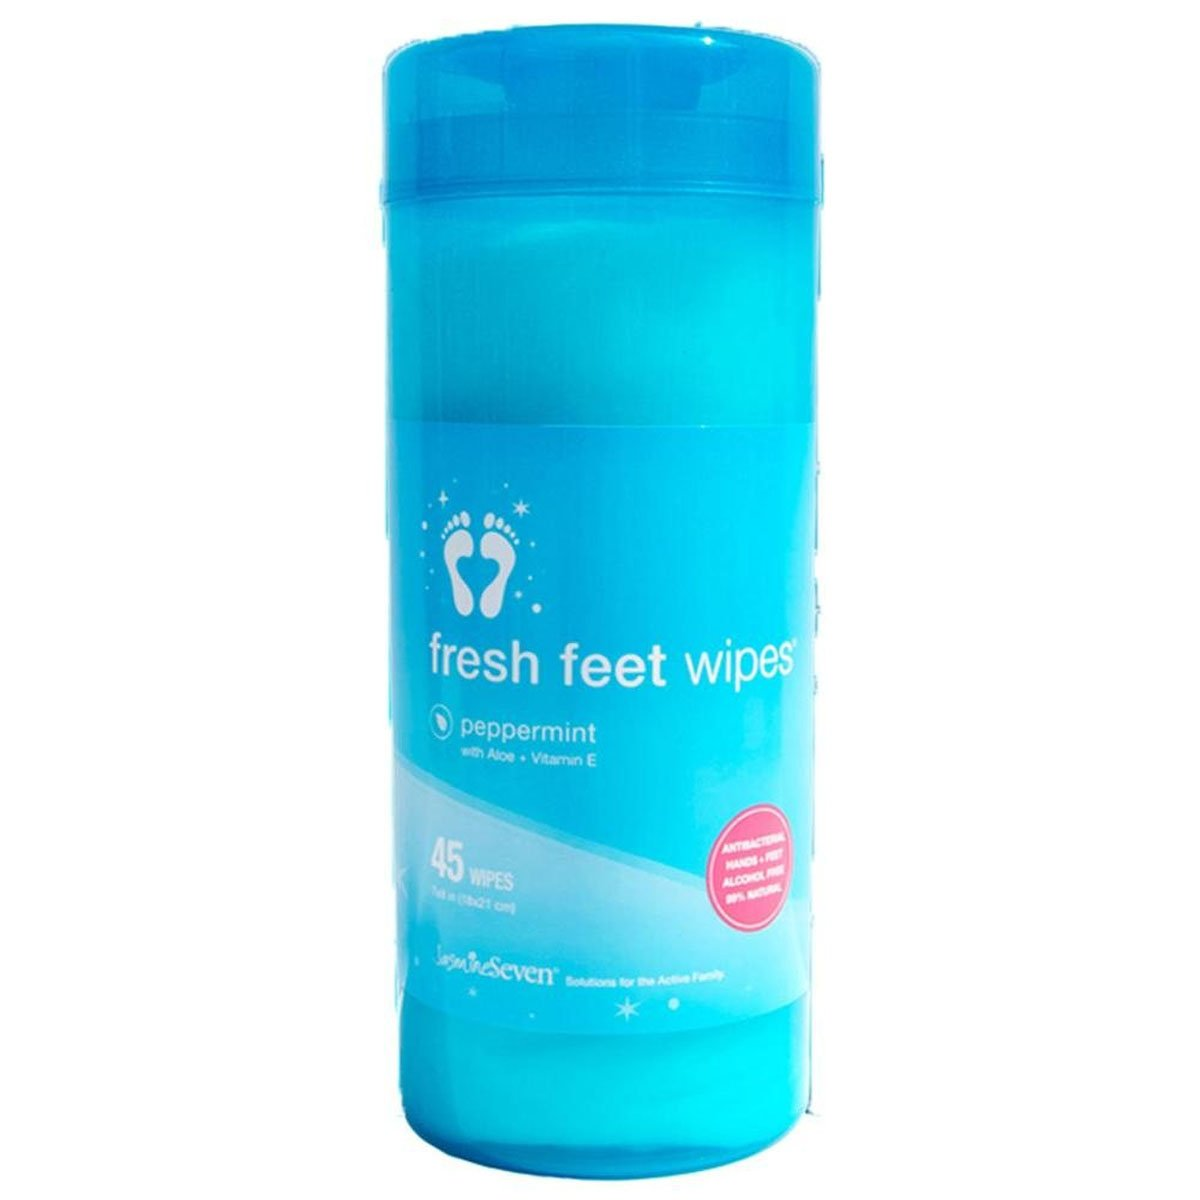 Jasmine Seven Fresh Feet Wipes 45 Count